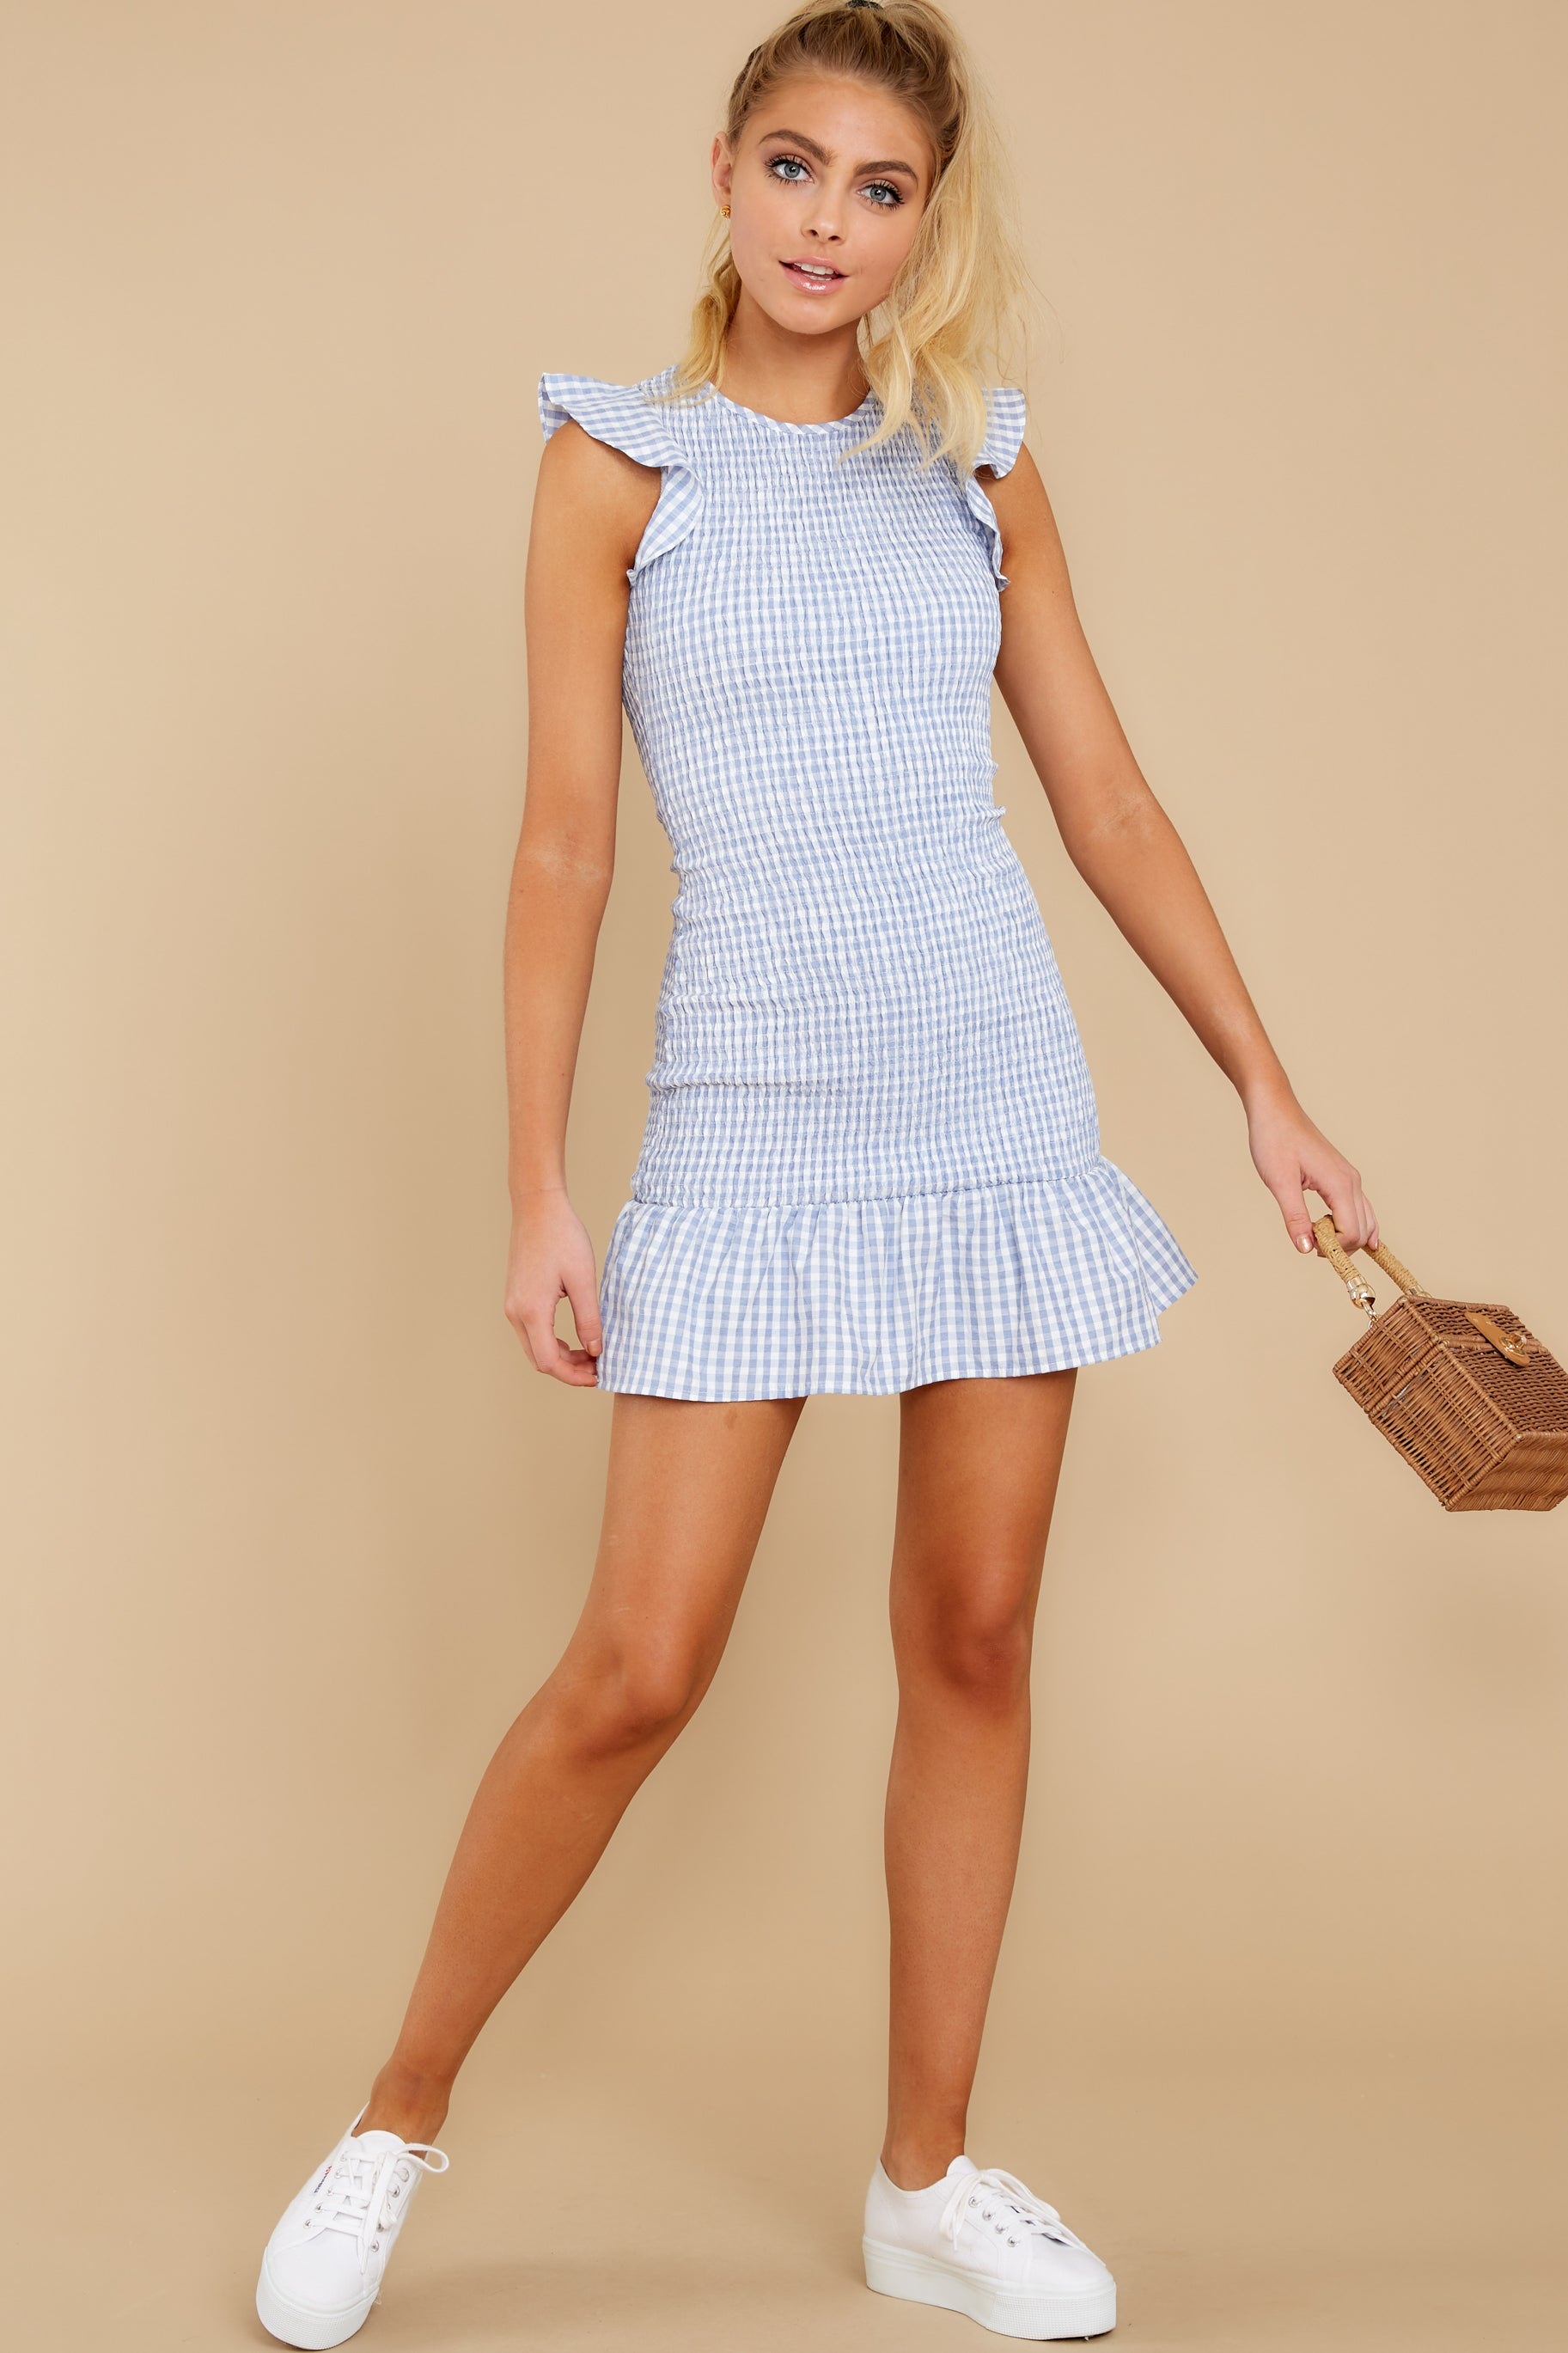 Sun Seeker Light Blue Gingham Dress